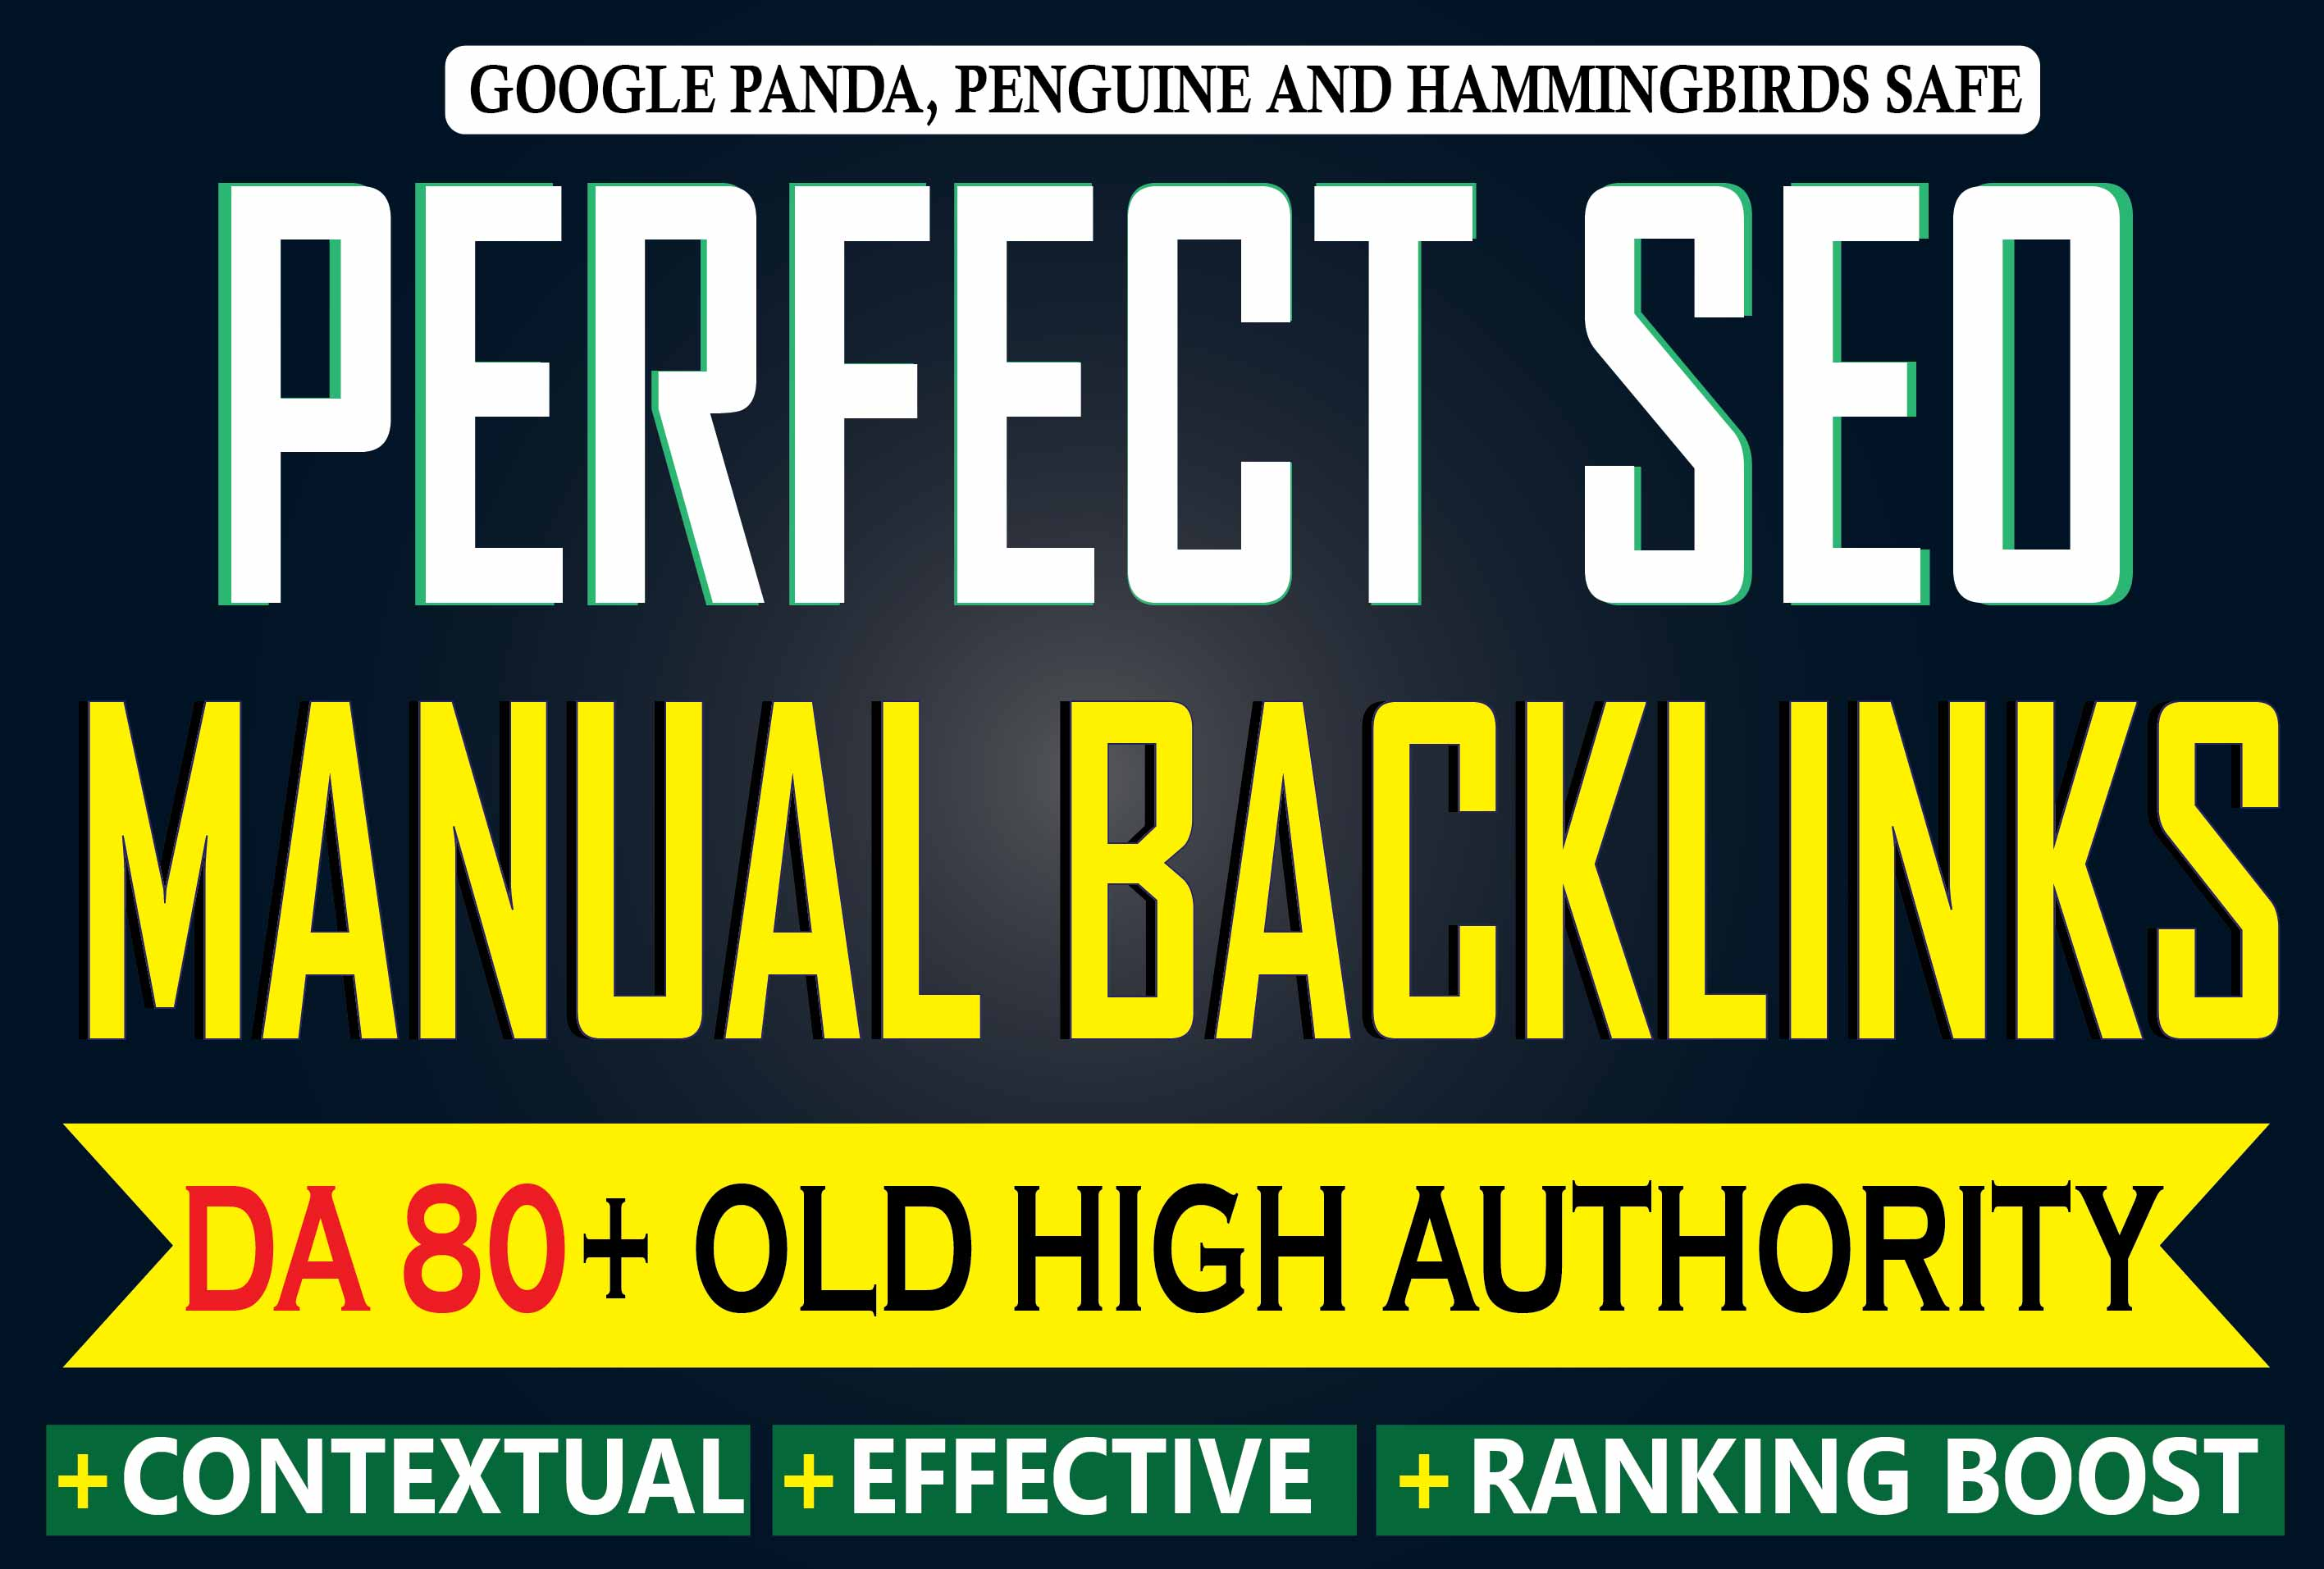 Get 30 Manual High Authority Content Based Perfect Backlinks with DA80 Plus